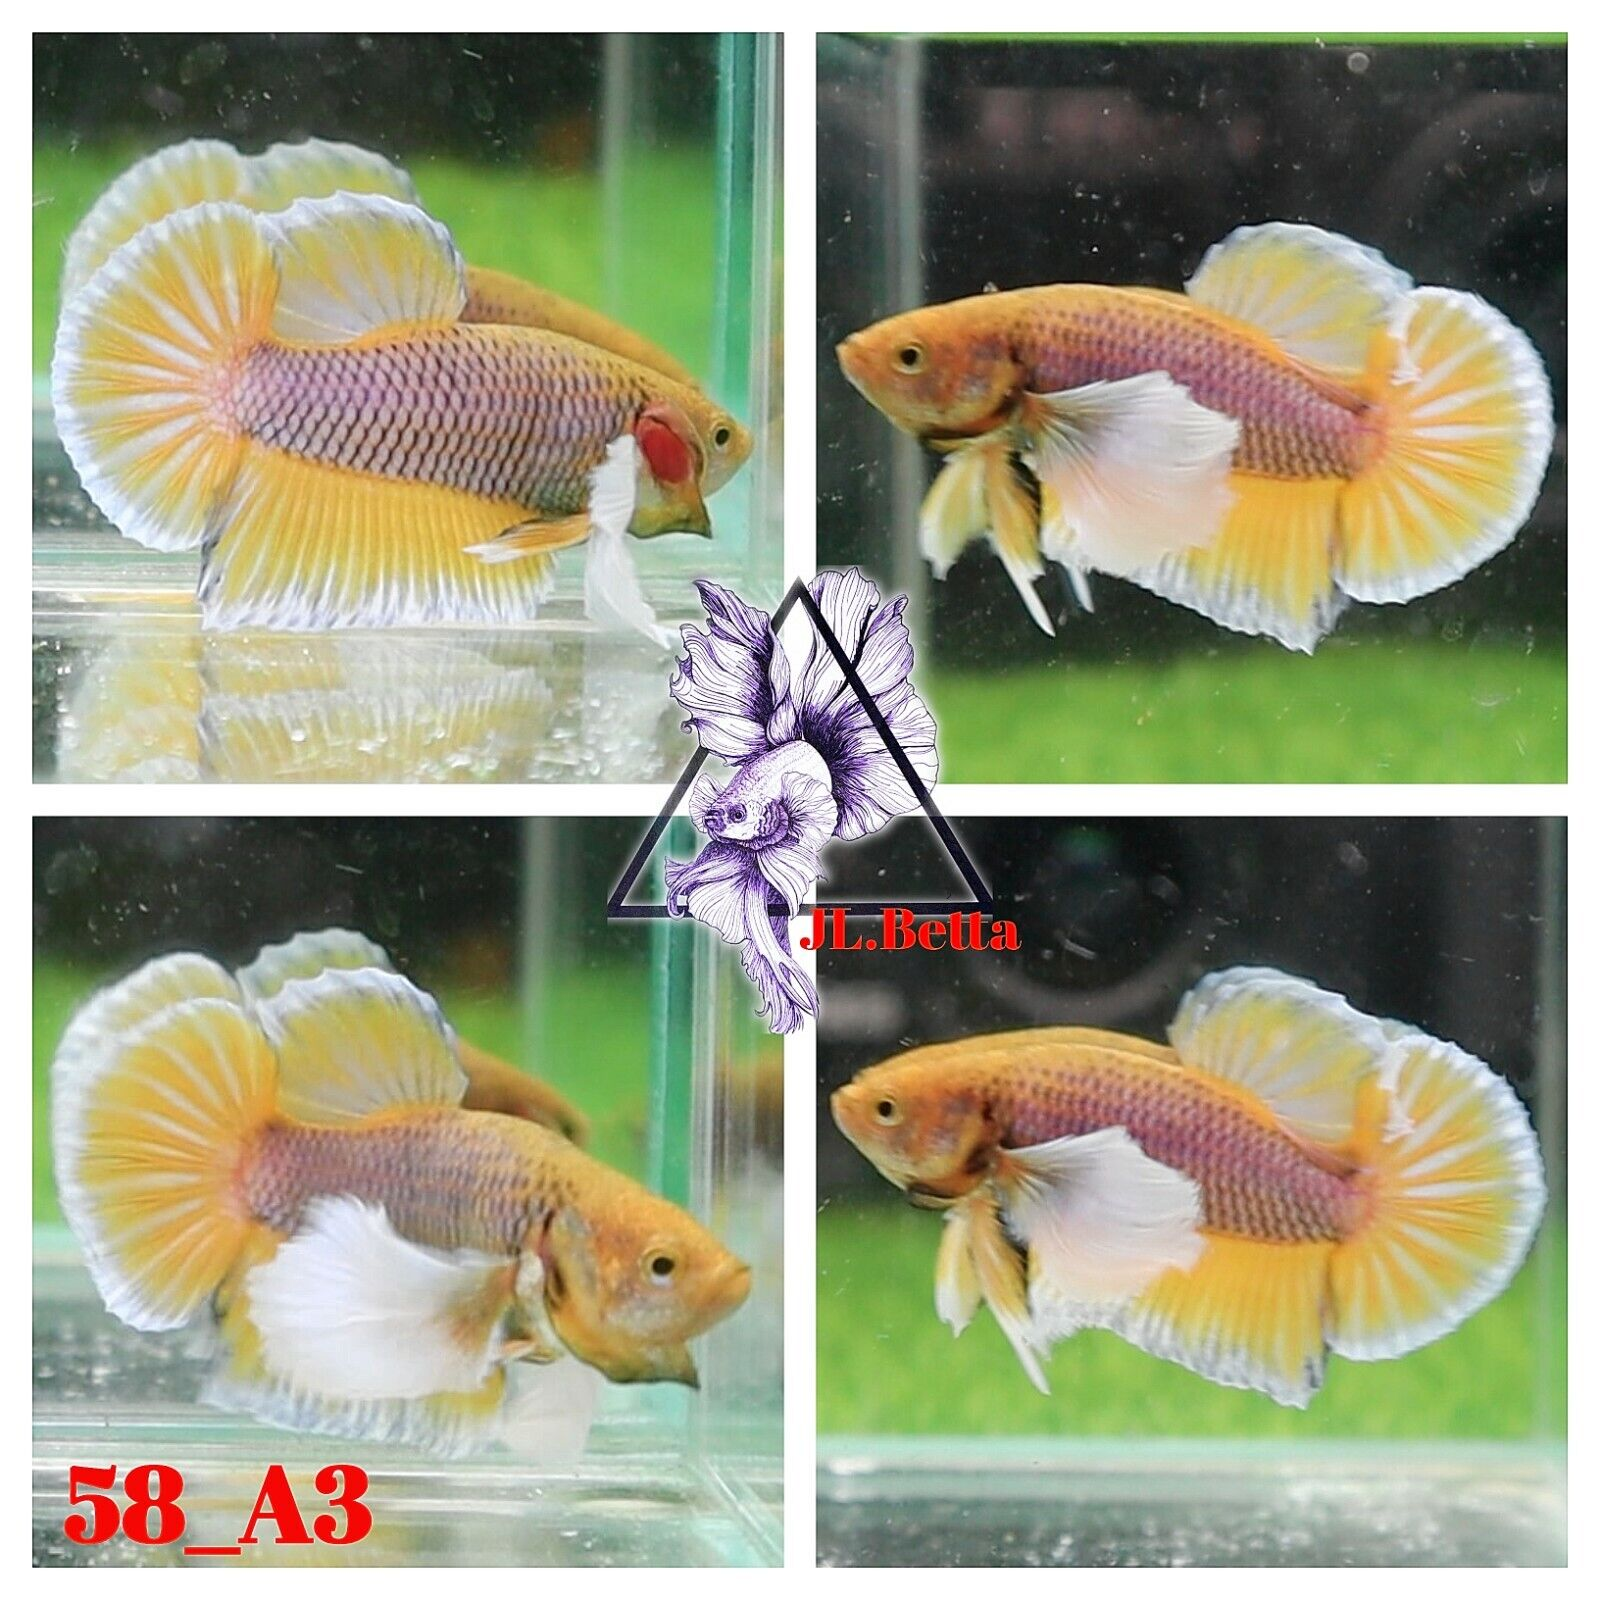 58 A3 Live Betta Fish High Quality Male Yellow Dumbo Plakat Video Included  - $25.00